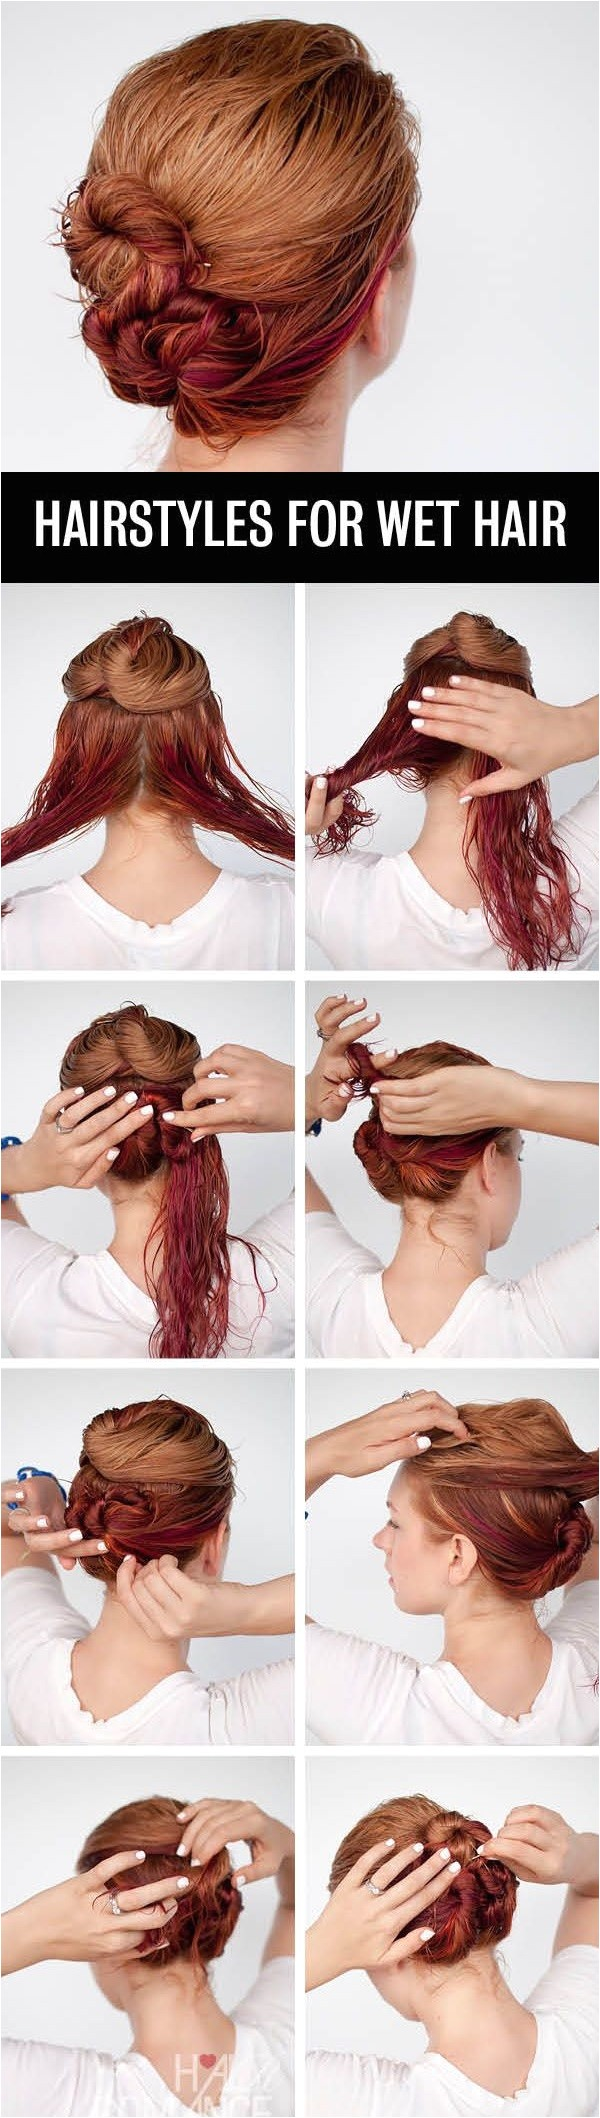 quick hairstyle for wet hair